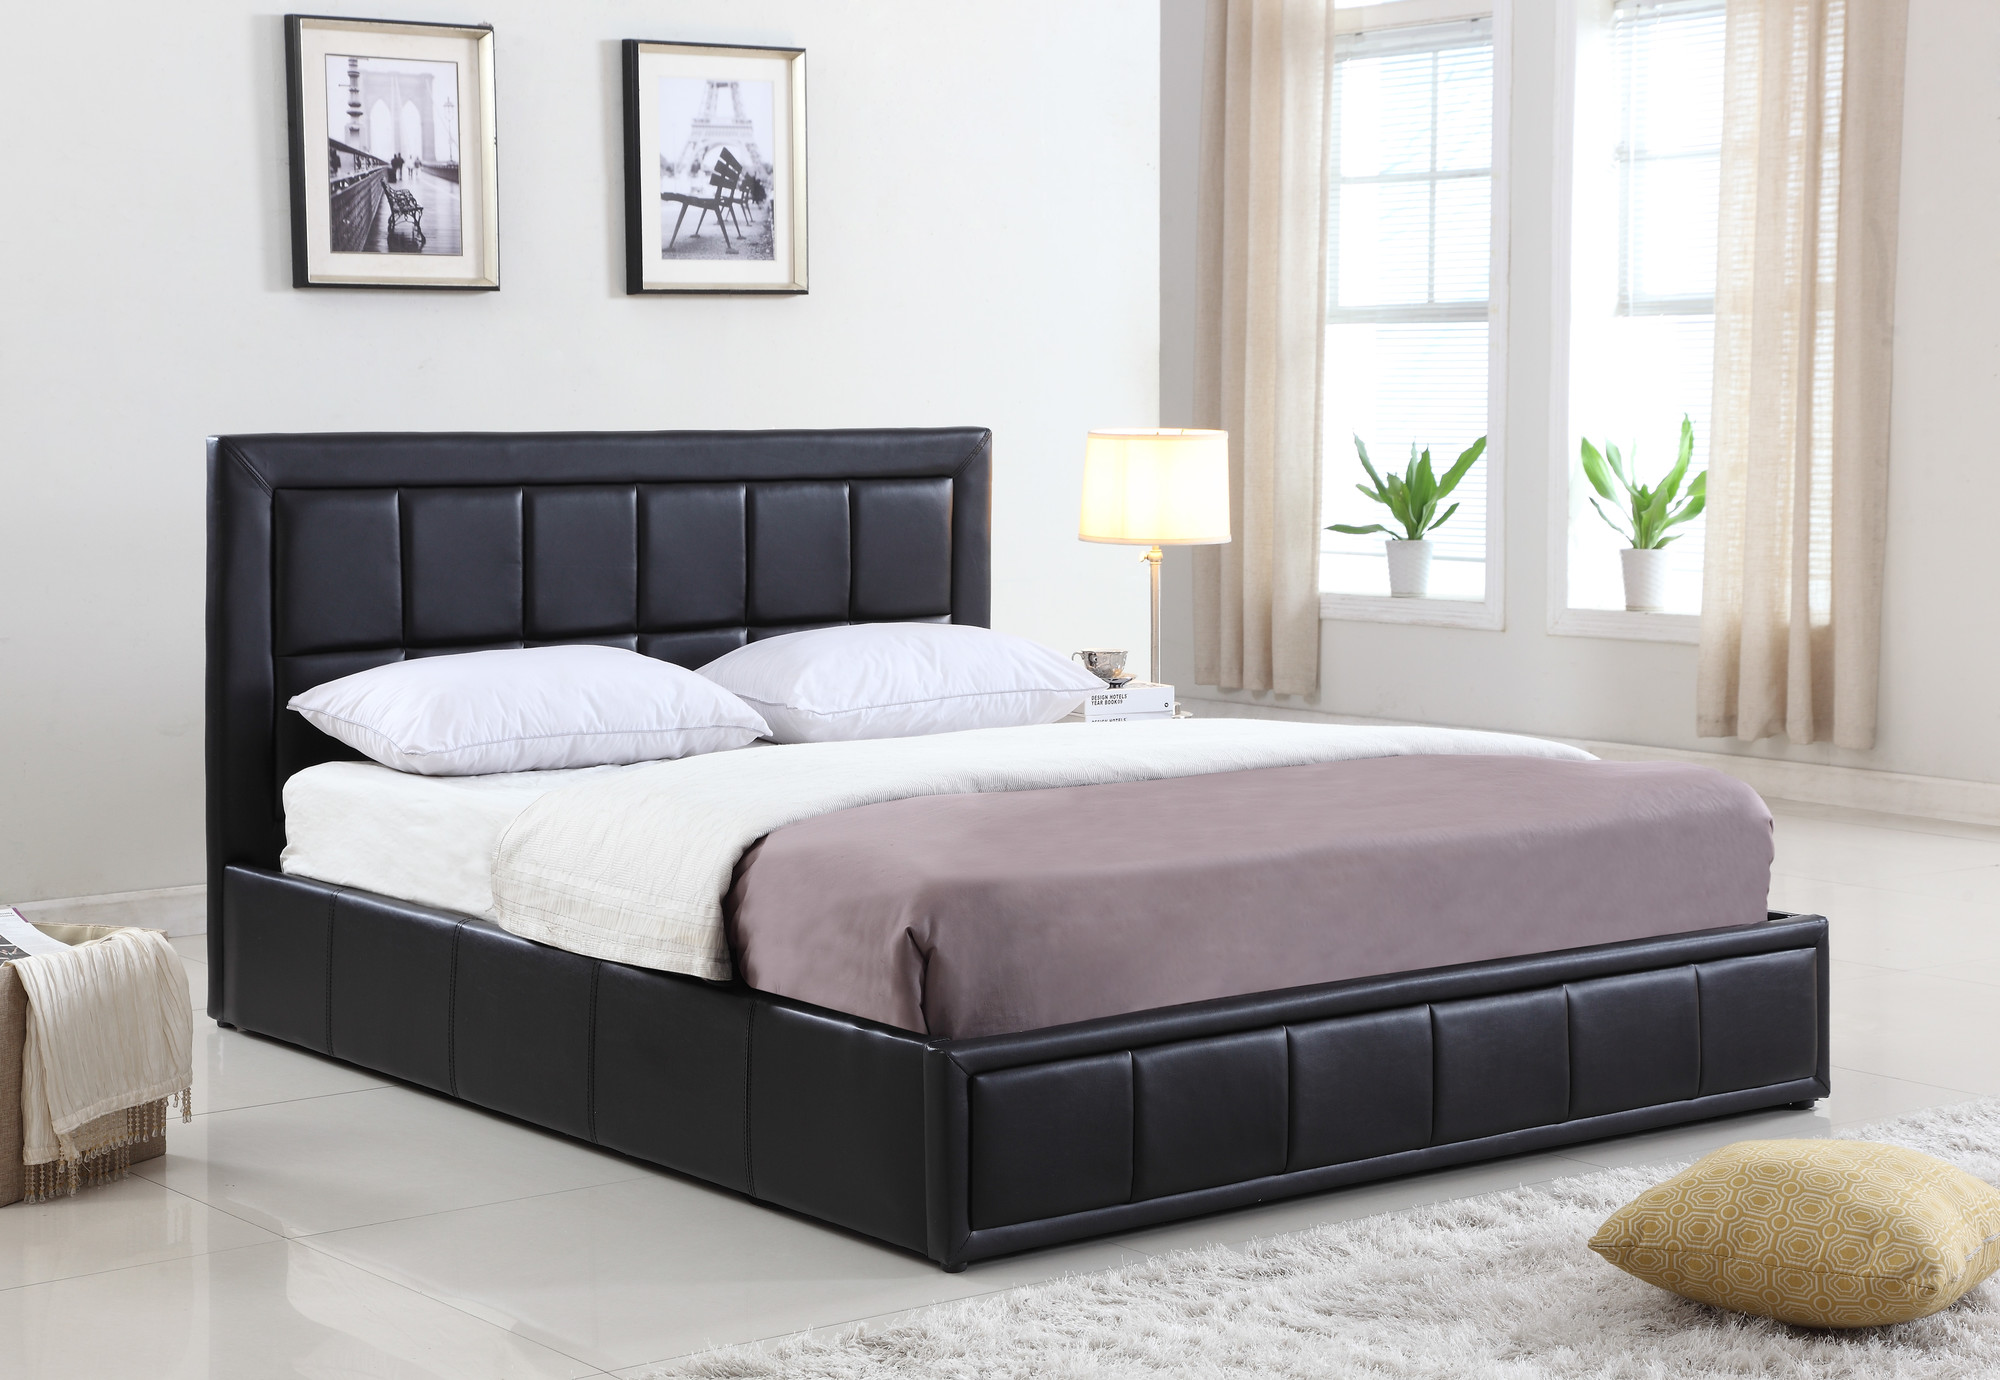 VIC Furniture Atticus PU Leather Queen Gas Lift Storage Bed ...